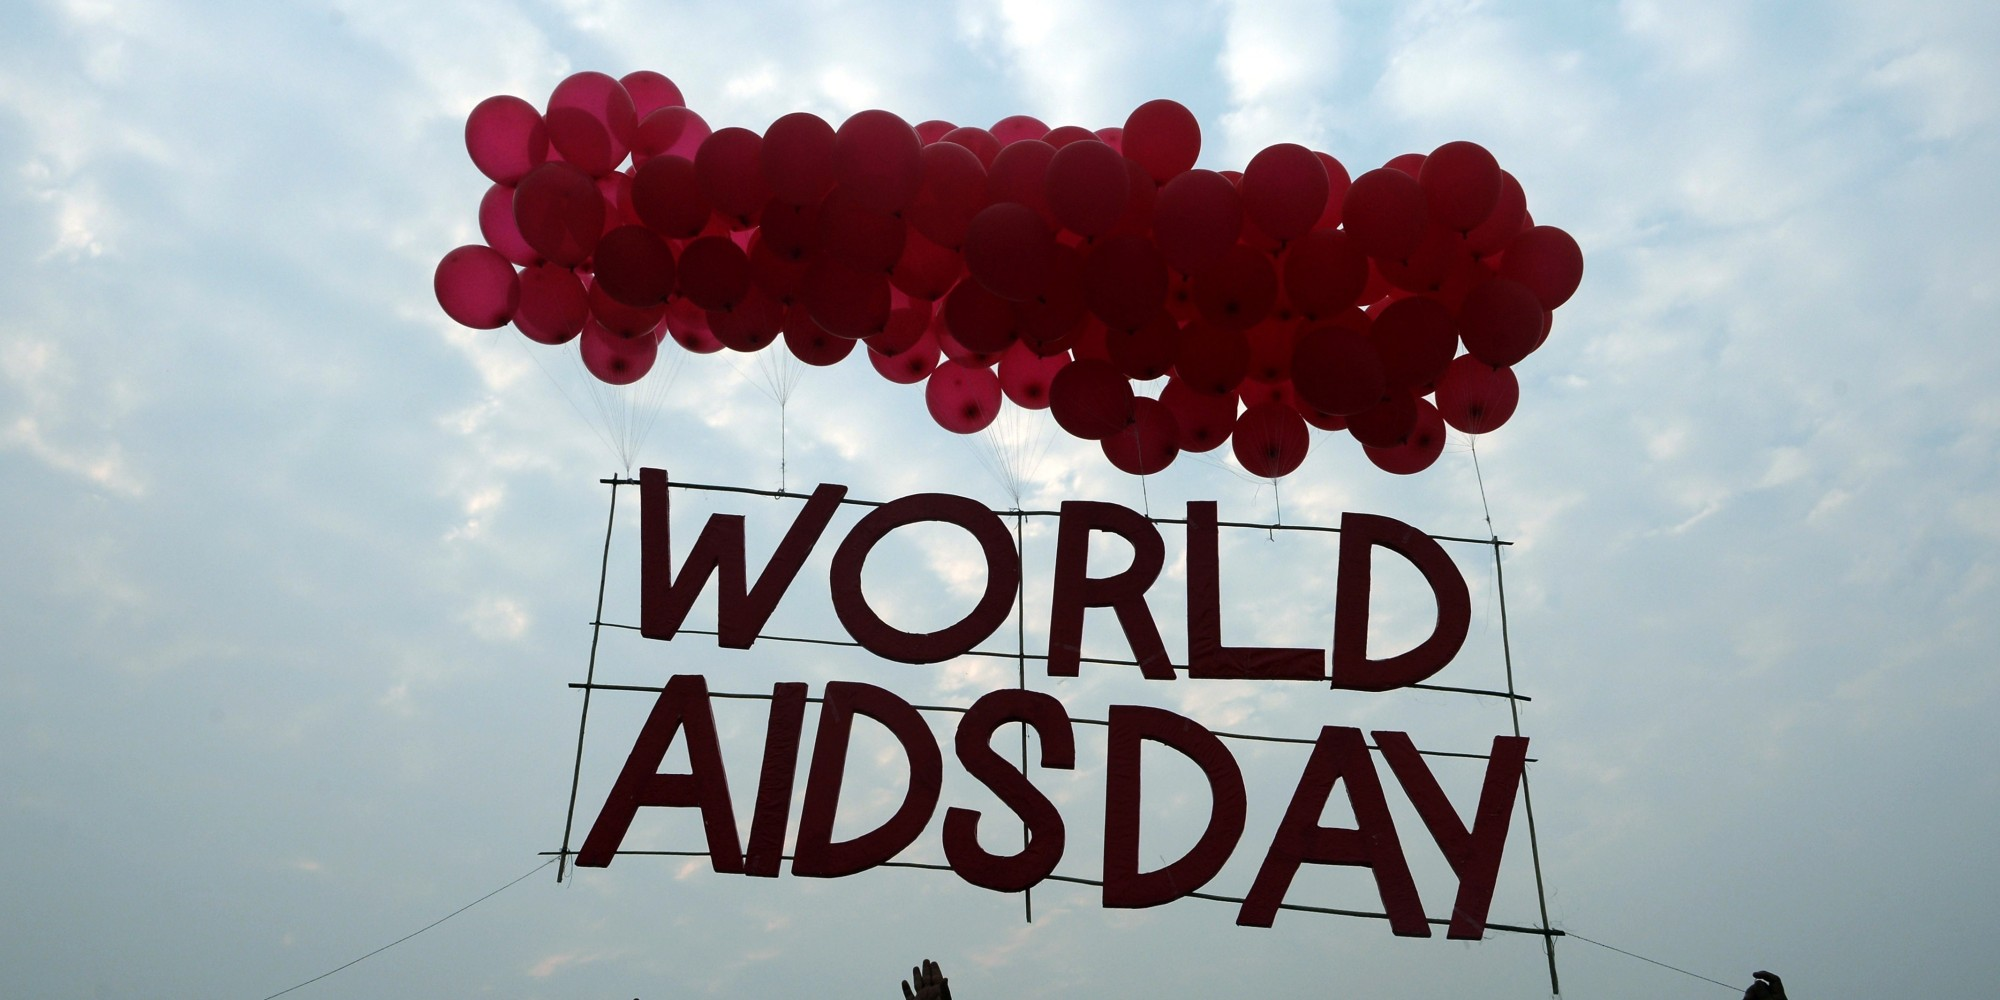 celebrating World Aids Day logo flying with balloons picture